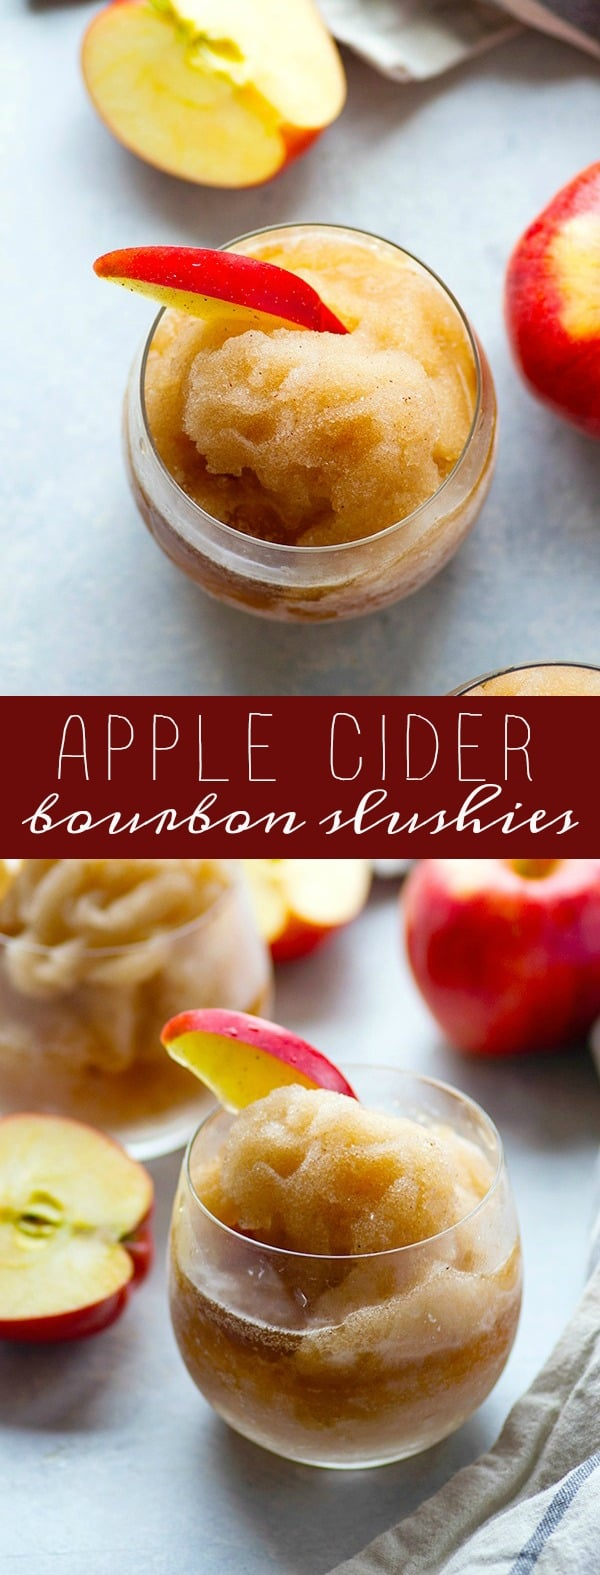 Apple cider bourbon slushies are going to quickly become your favorite fall cocktail! The sweet apple cider, fall spices, and firey bourbon are an incredible trio of flavors in these refreshing sippers.